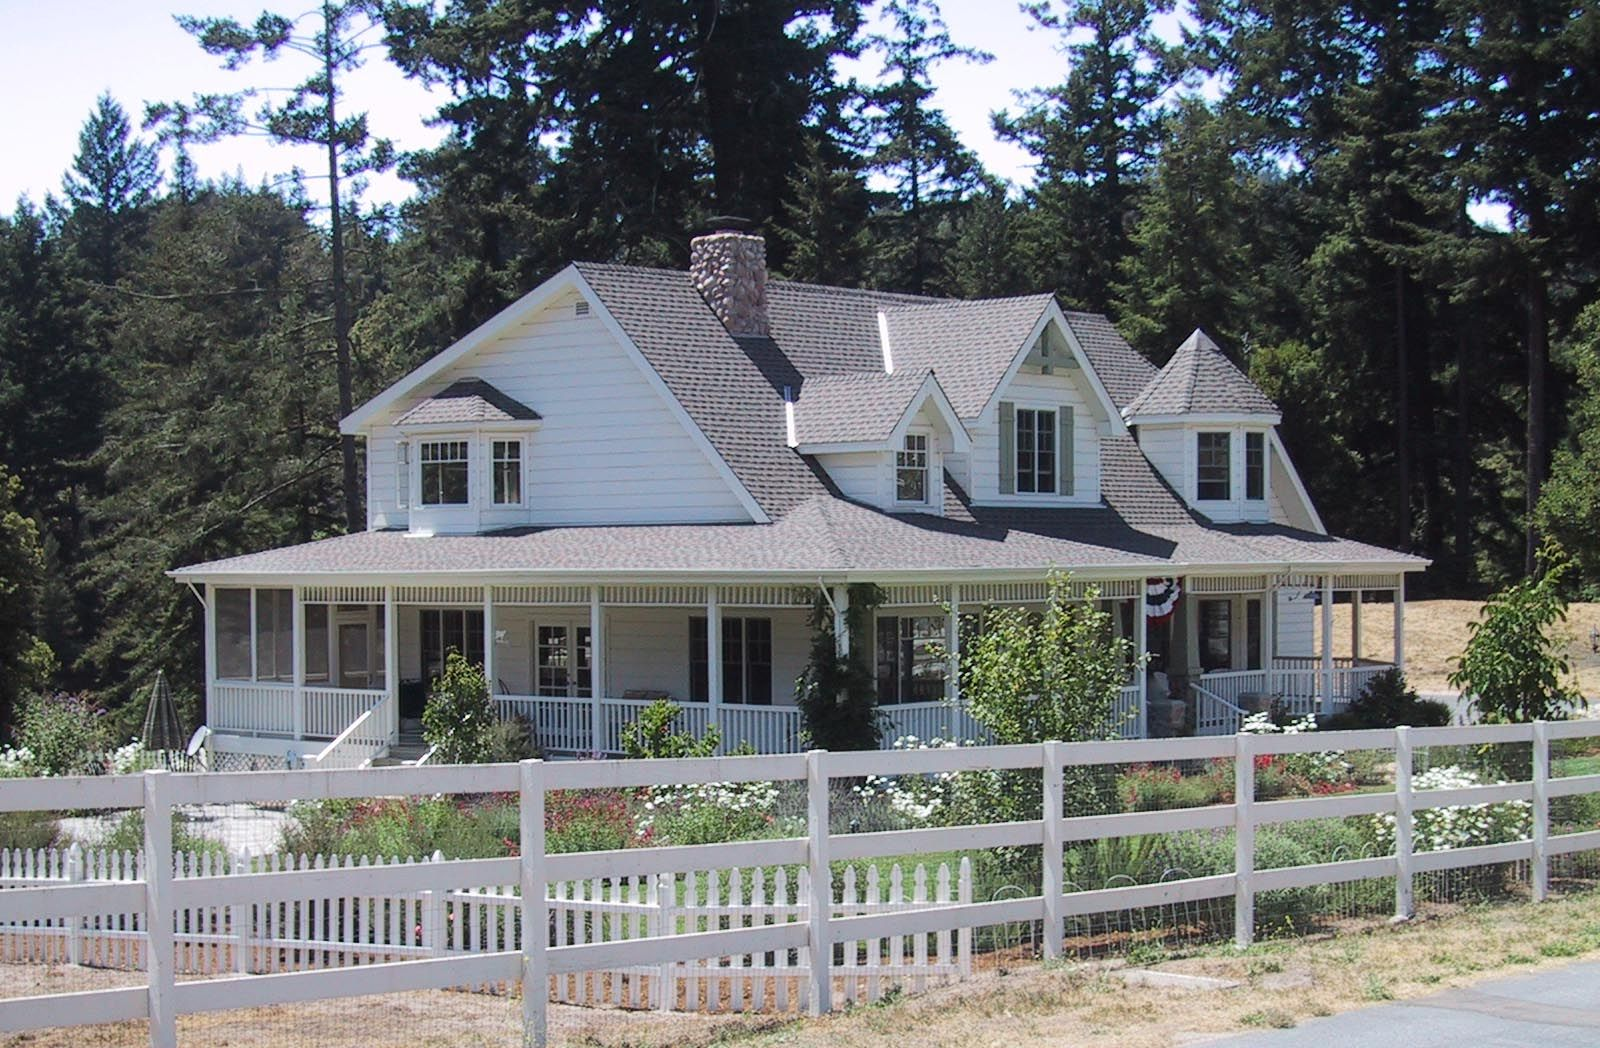 i love wrap around porches love the garden and pine trees if the